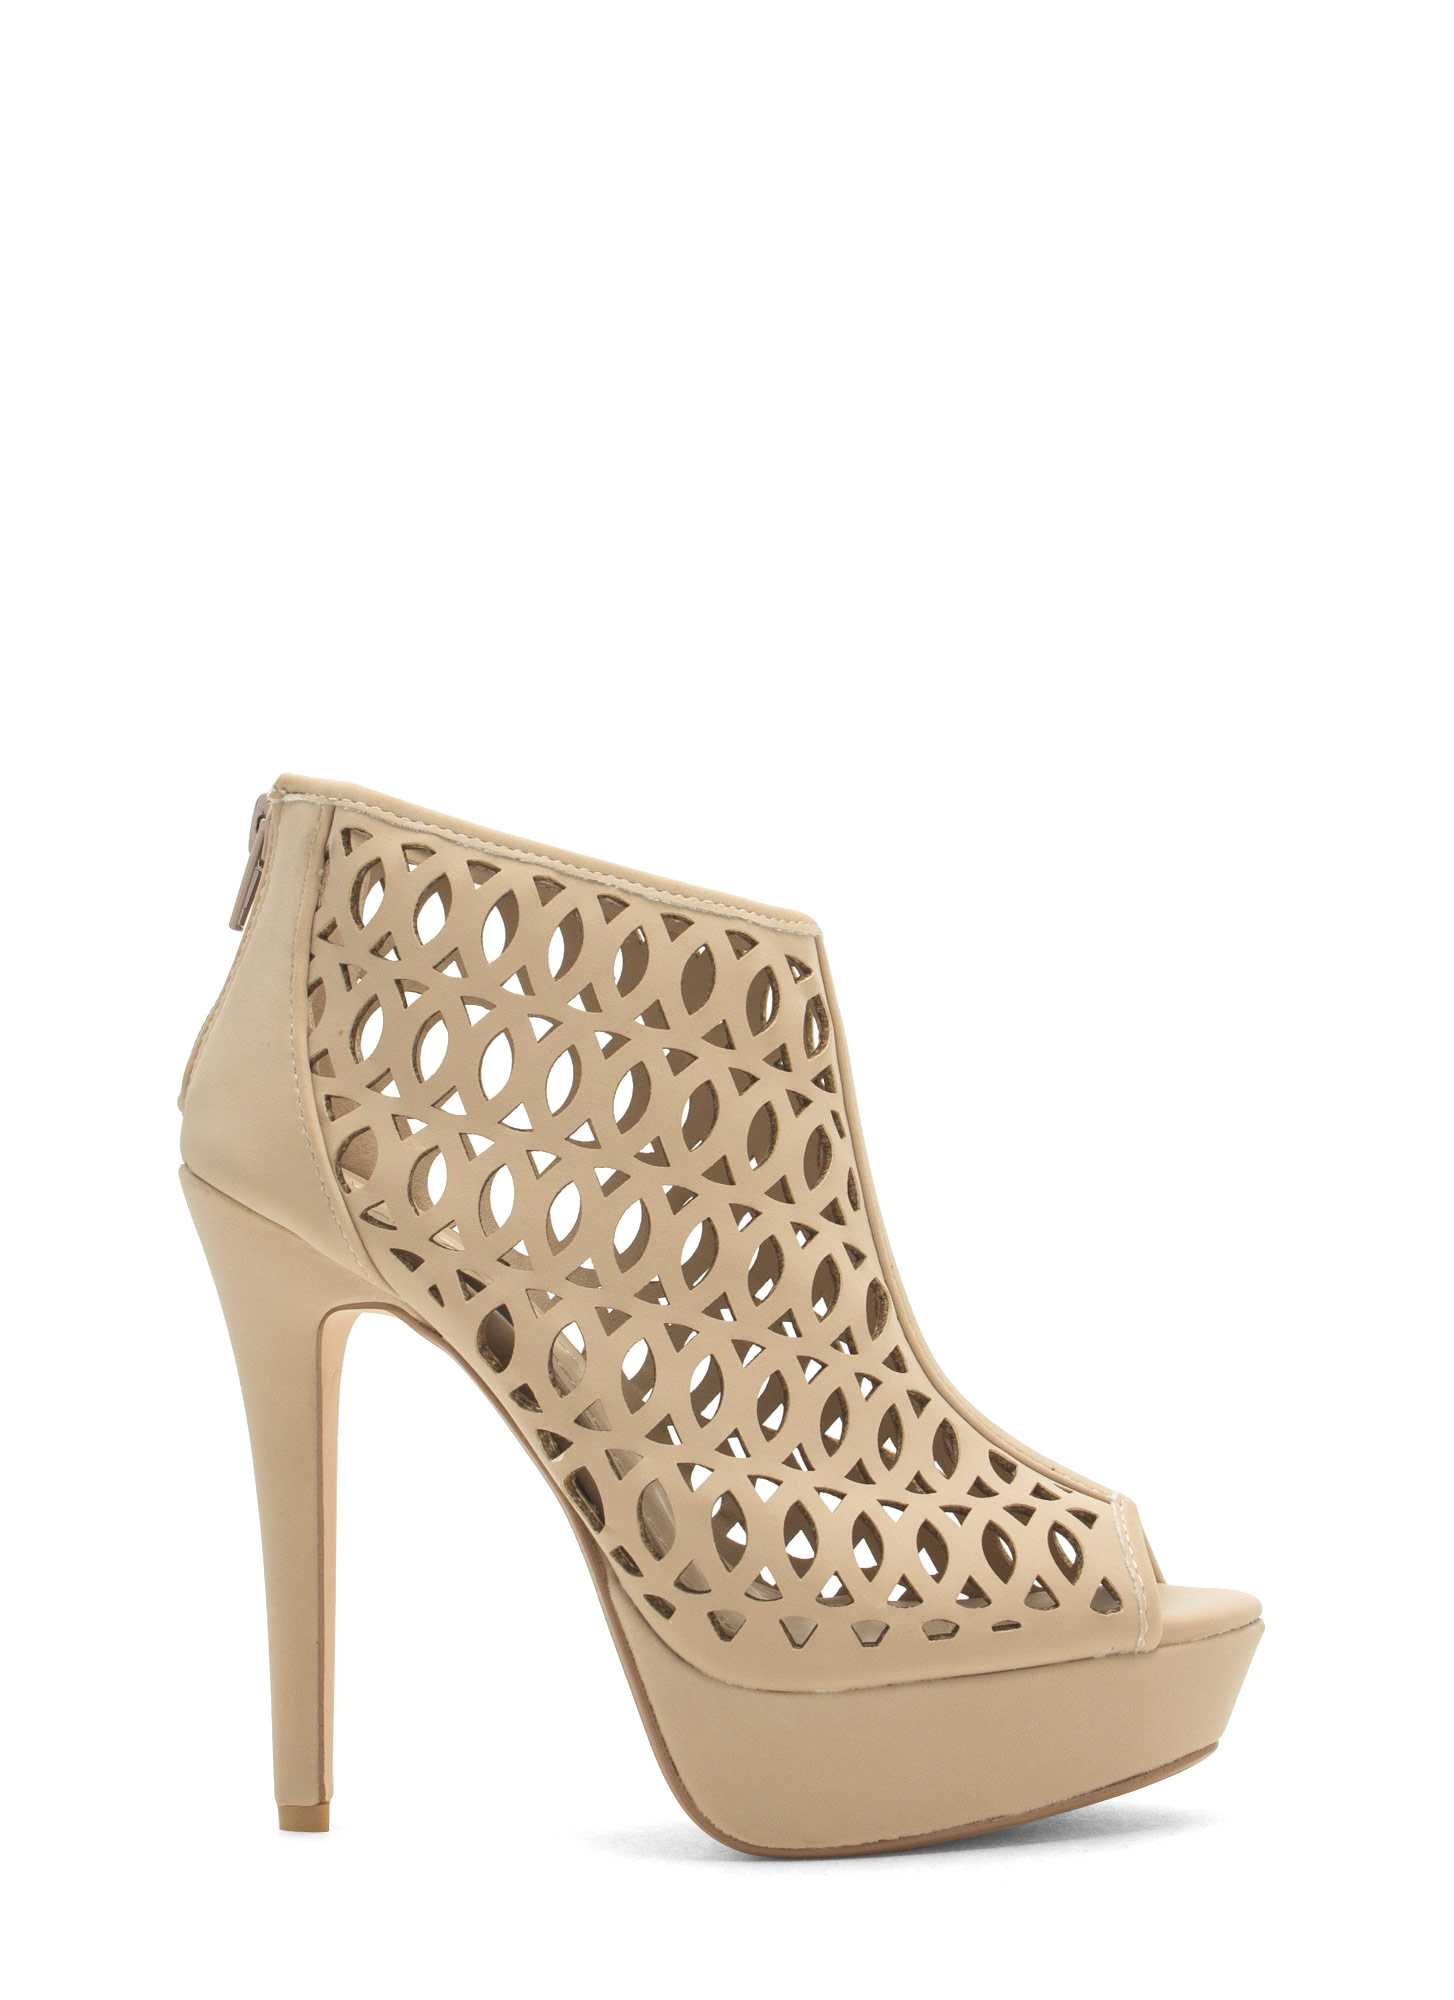 See You Lattice Laser Cut-Out Heels NUDE